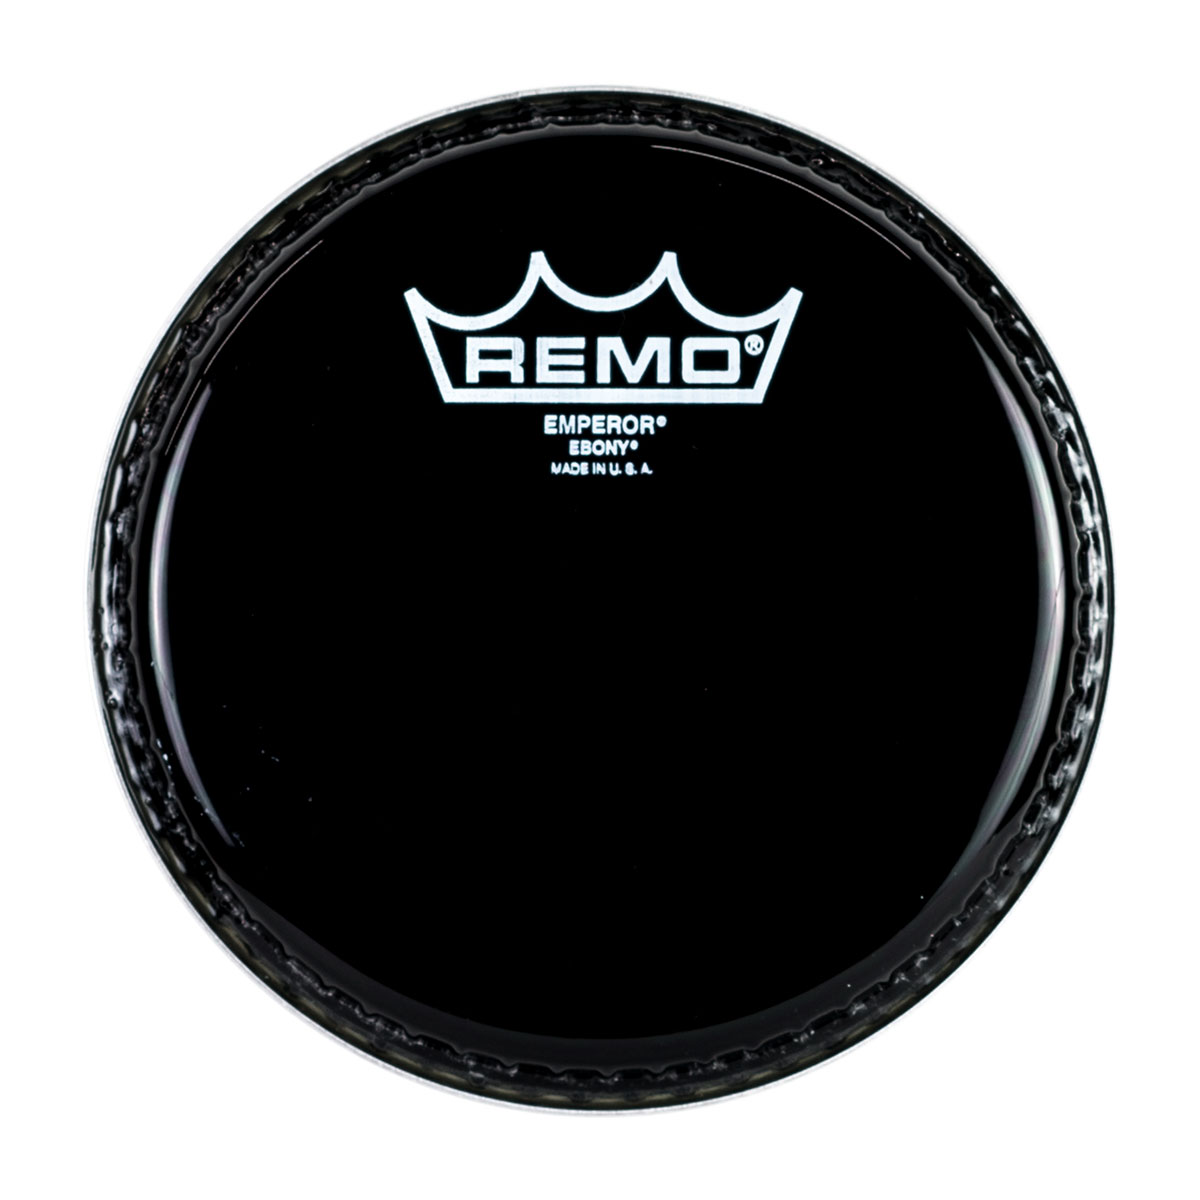 "Remo 8"" Emperor Ebony Drum Head"